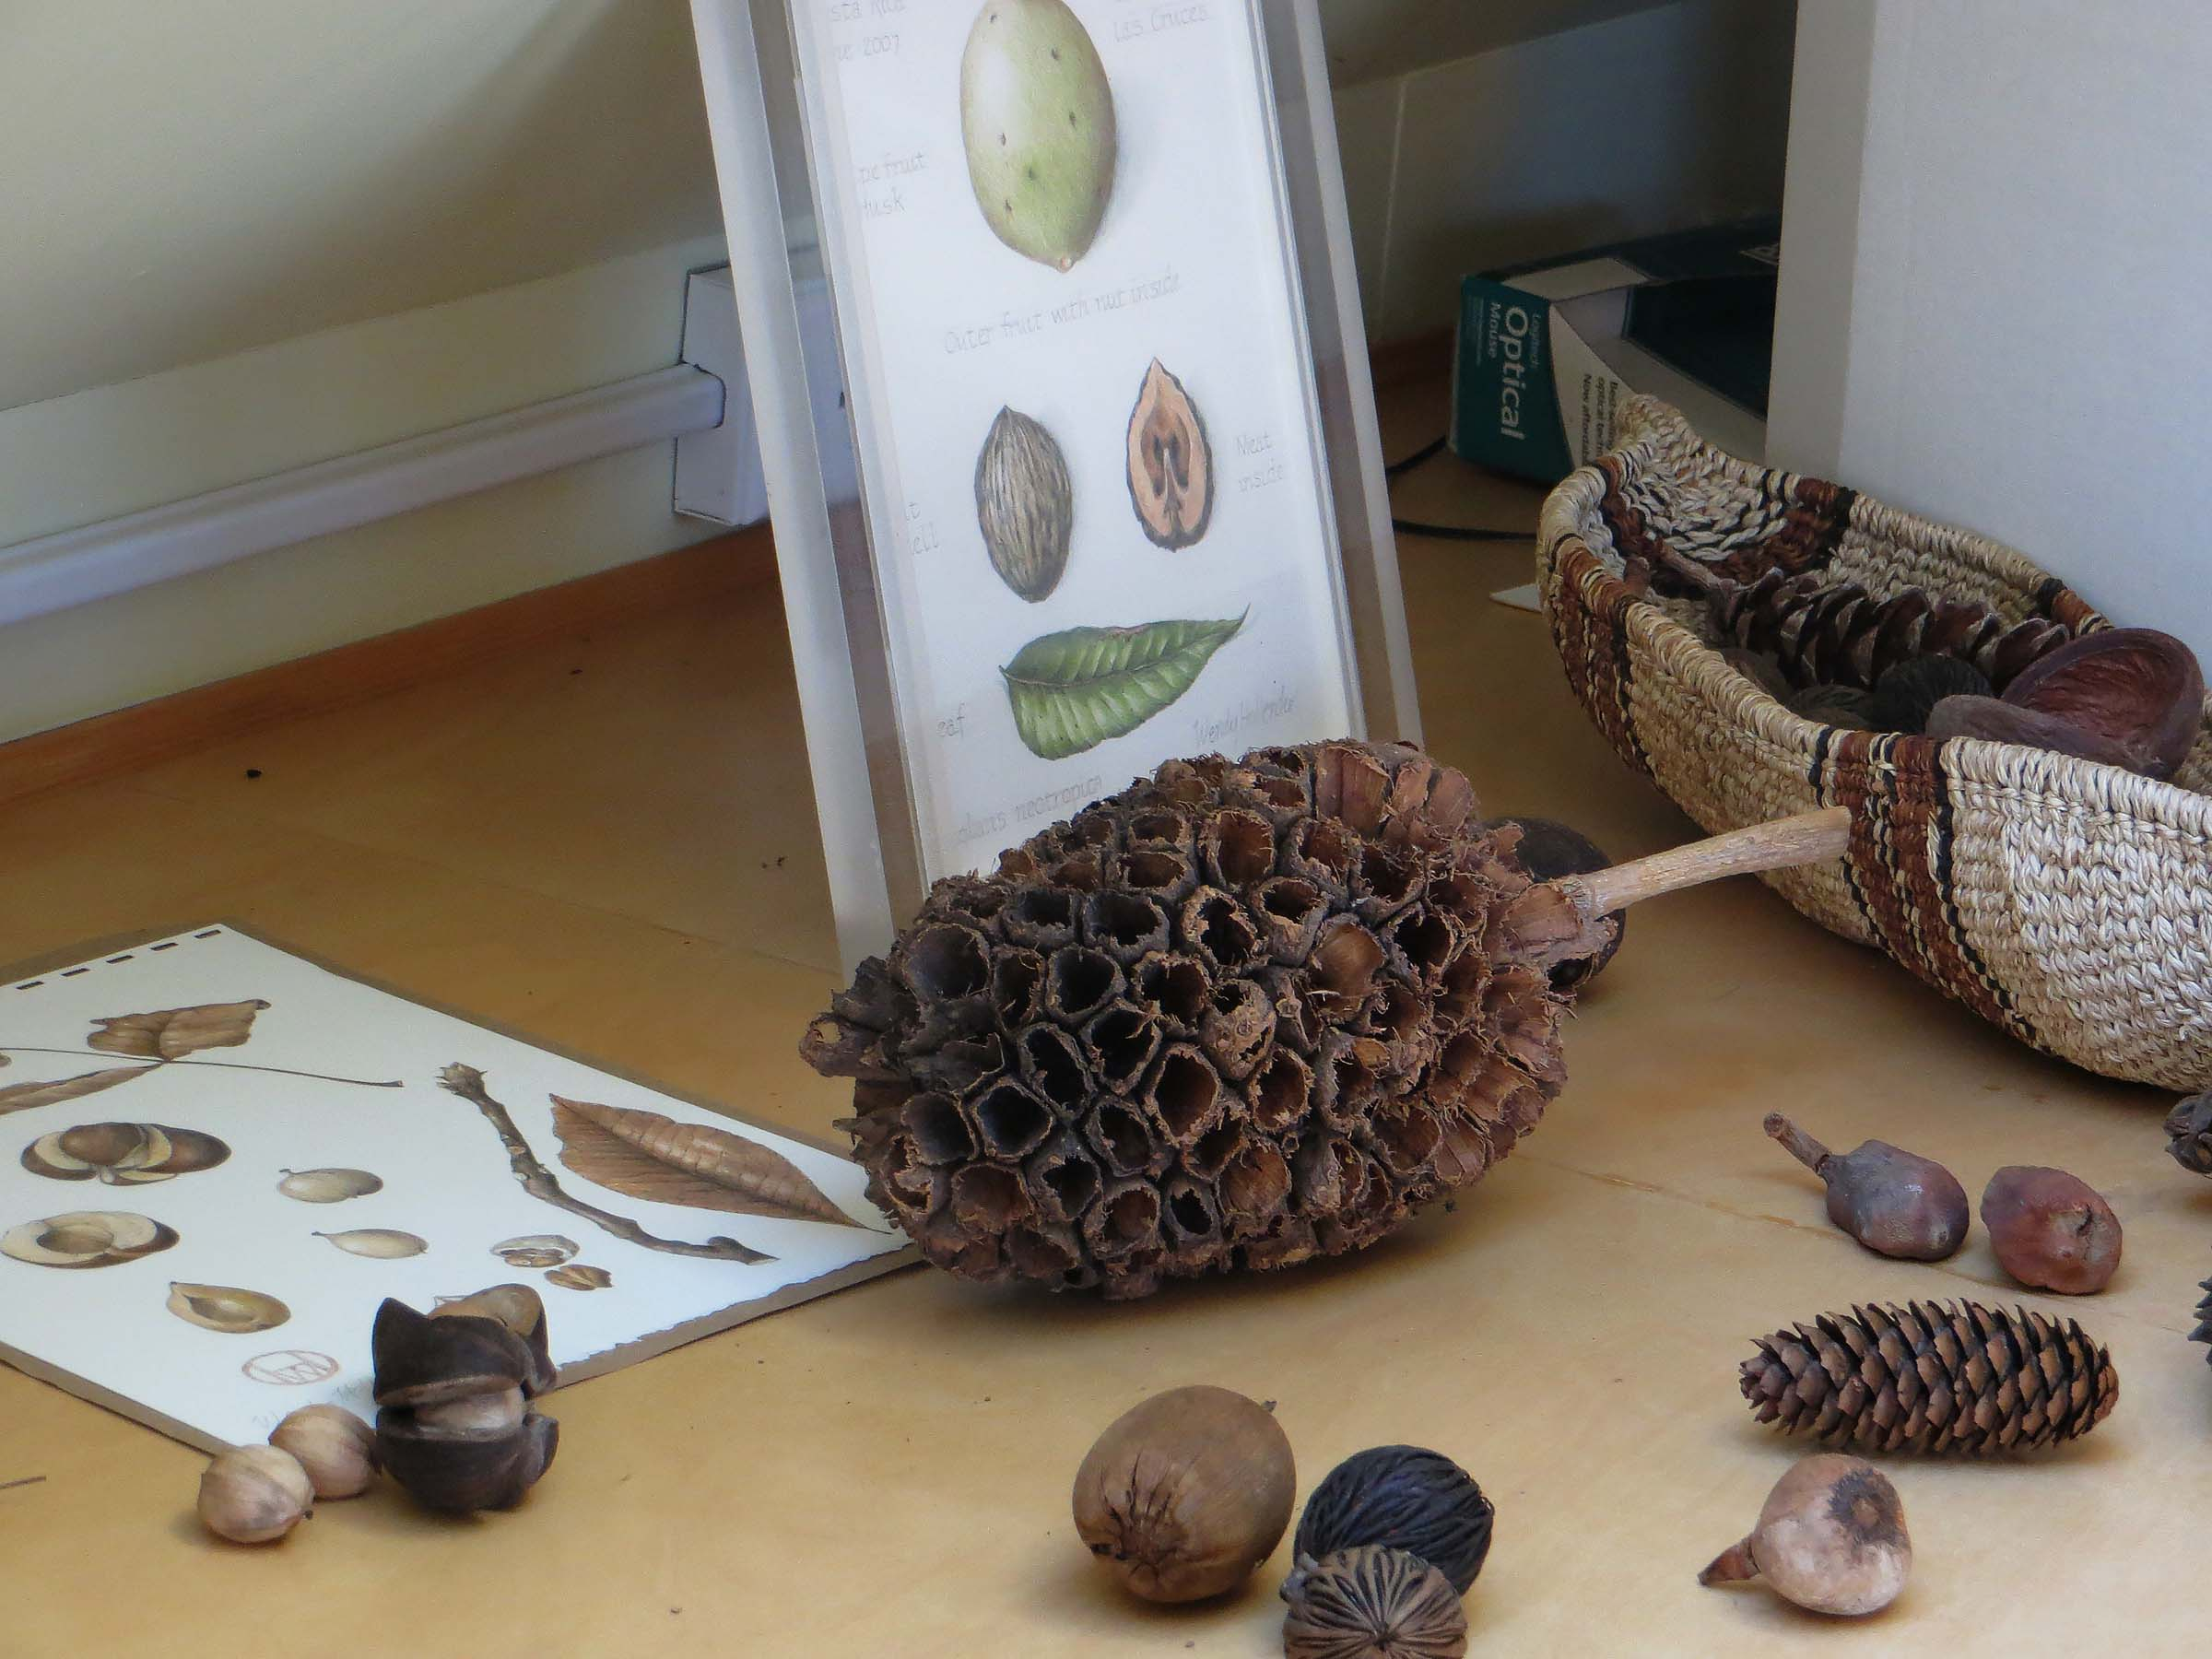 A collection of various seed pods